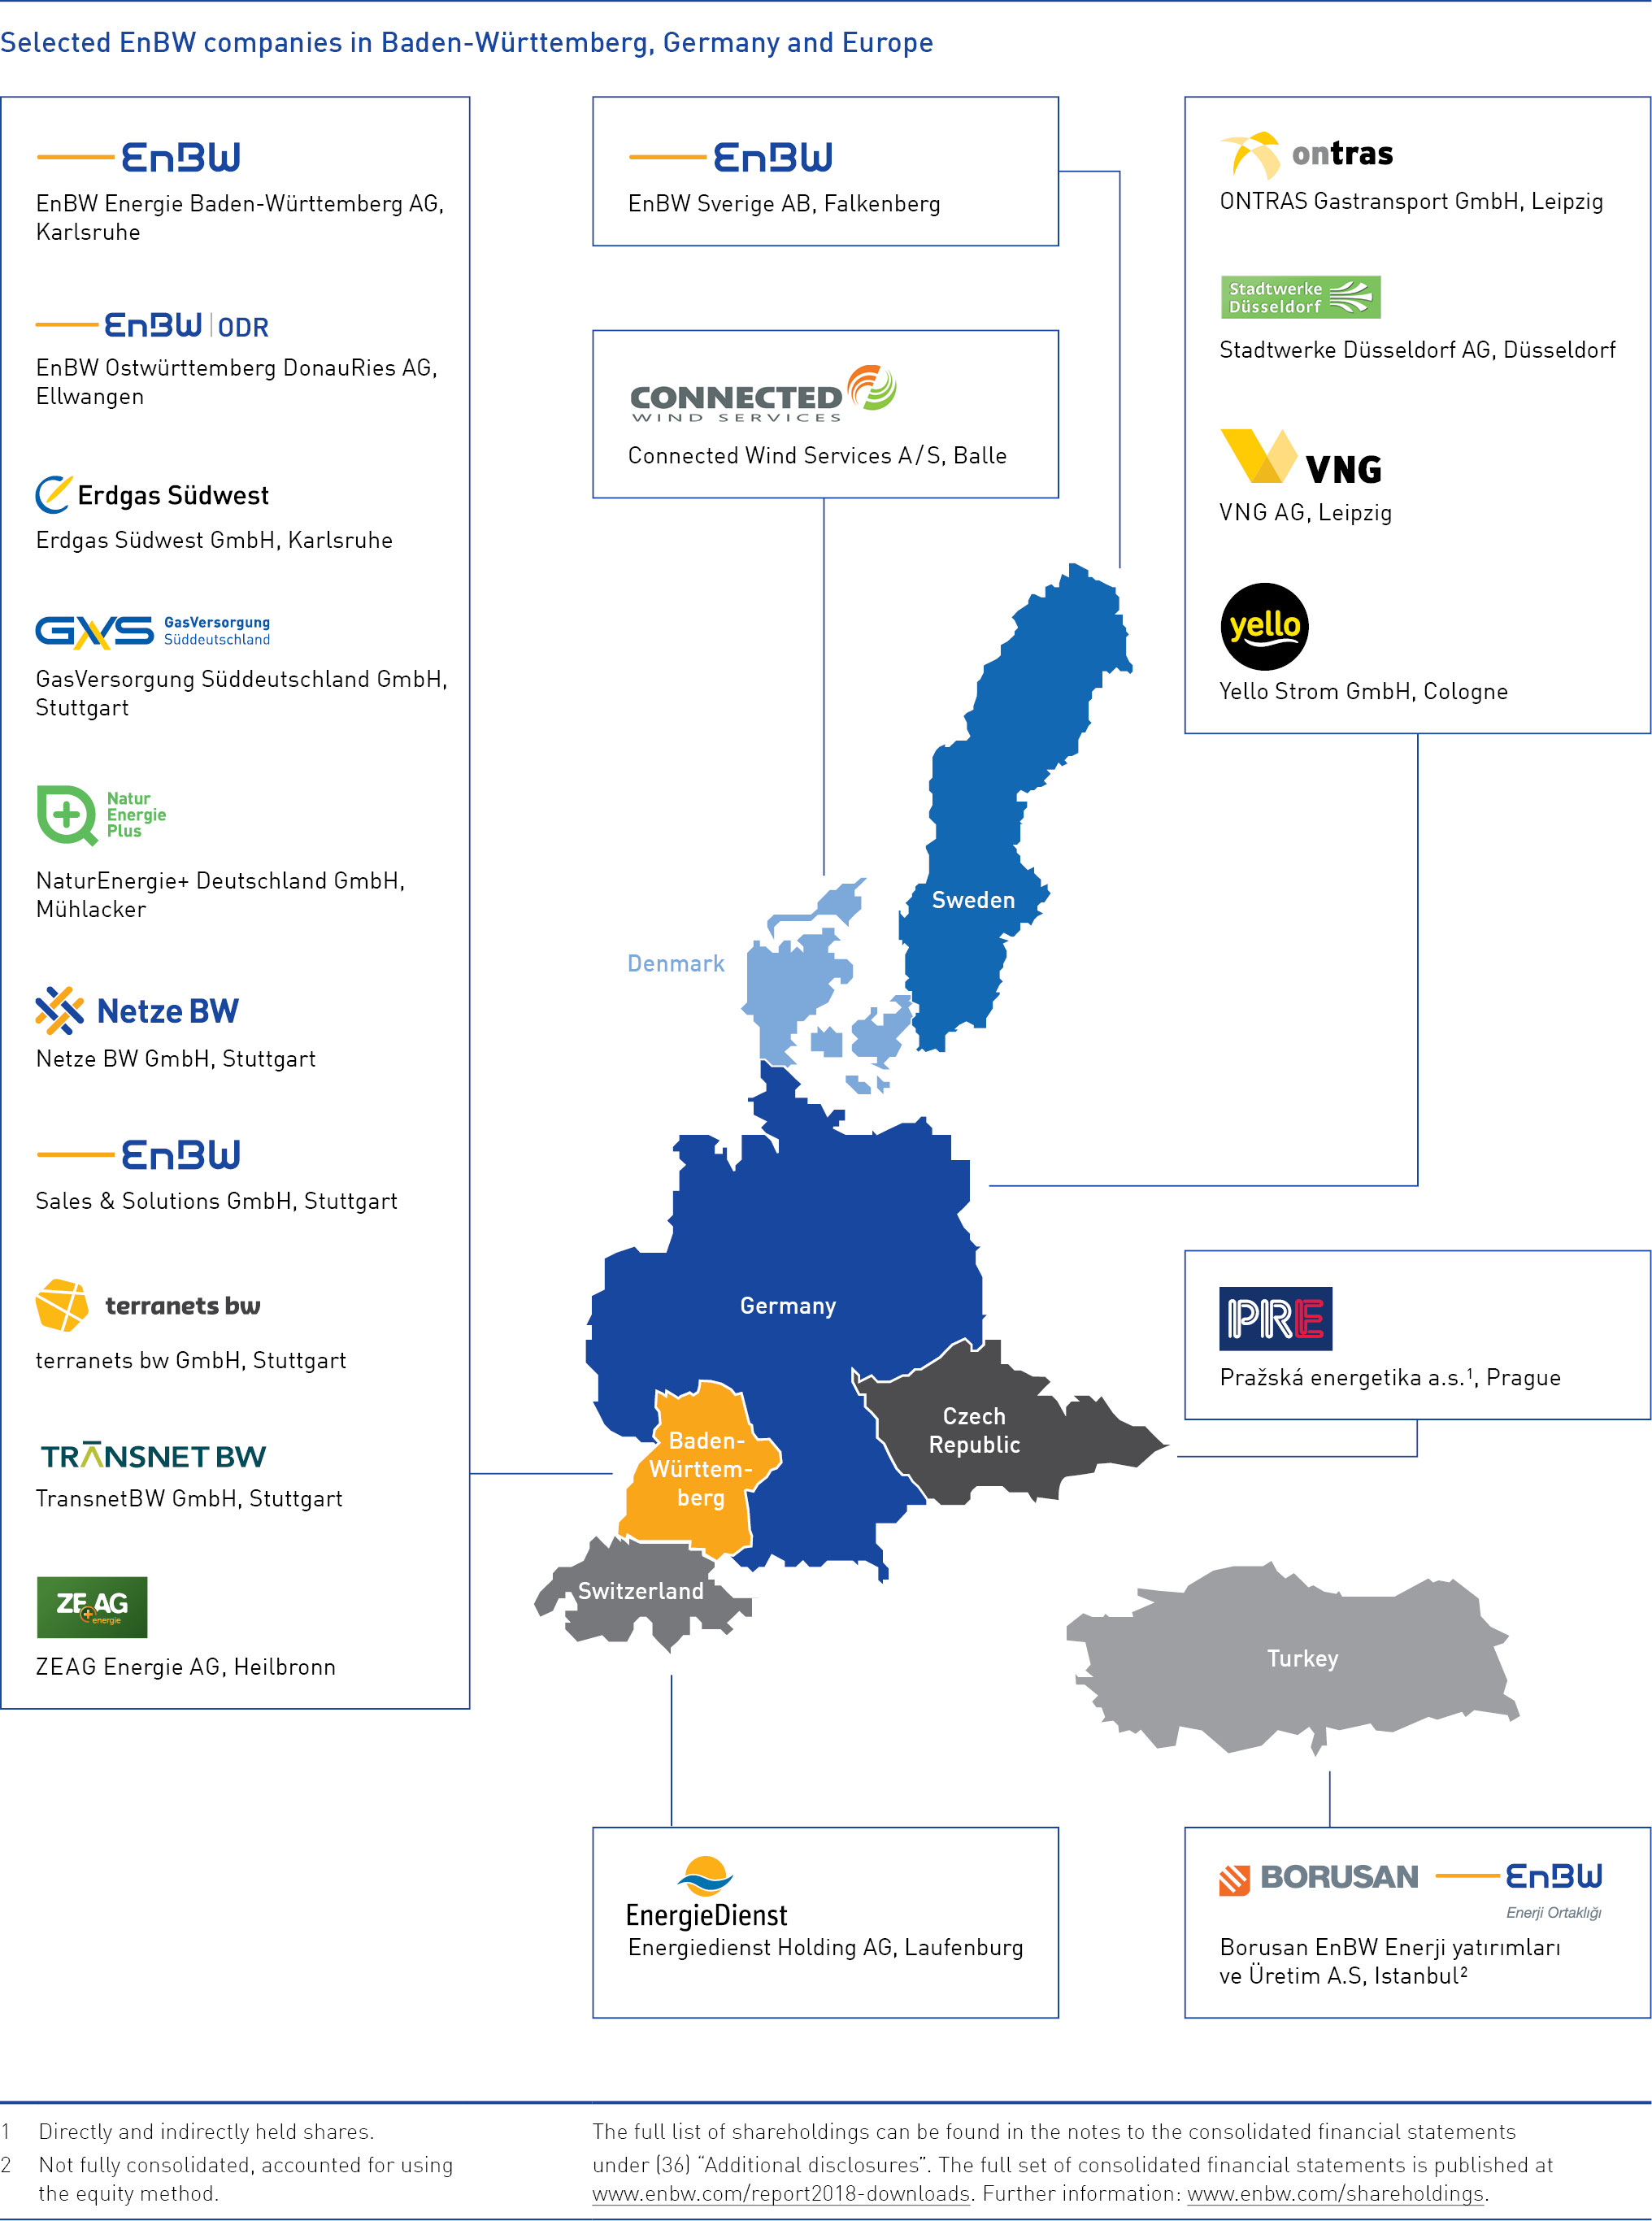 Selected EnBW companies in Baden-Württemberg, Germany and Europe